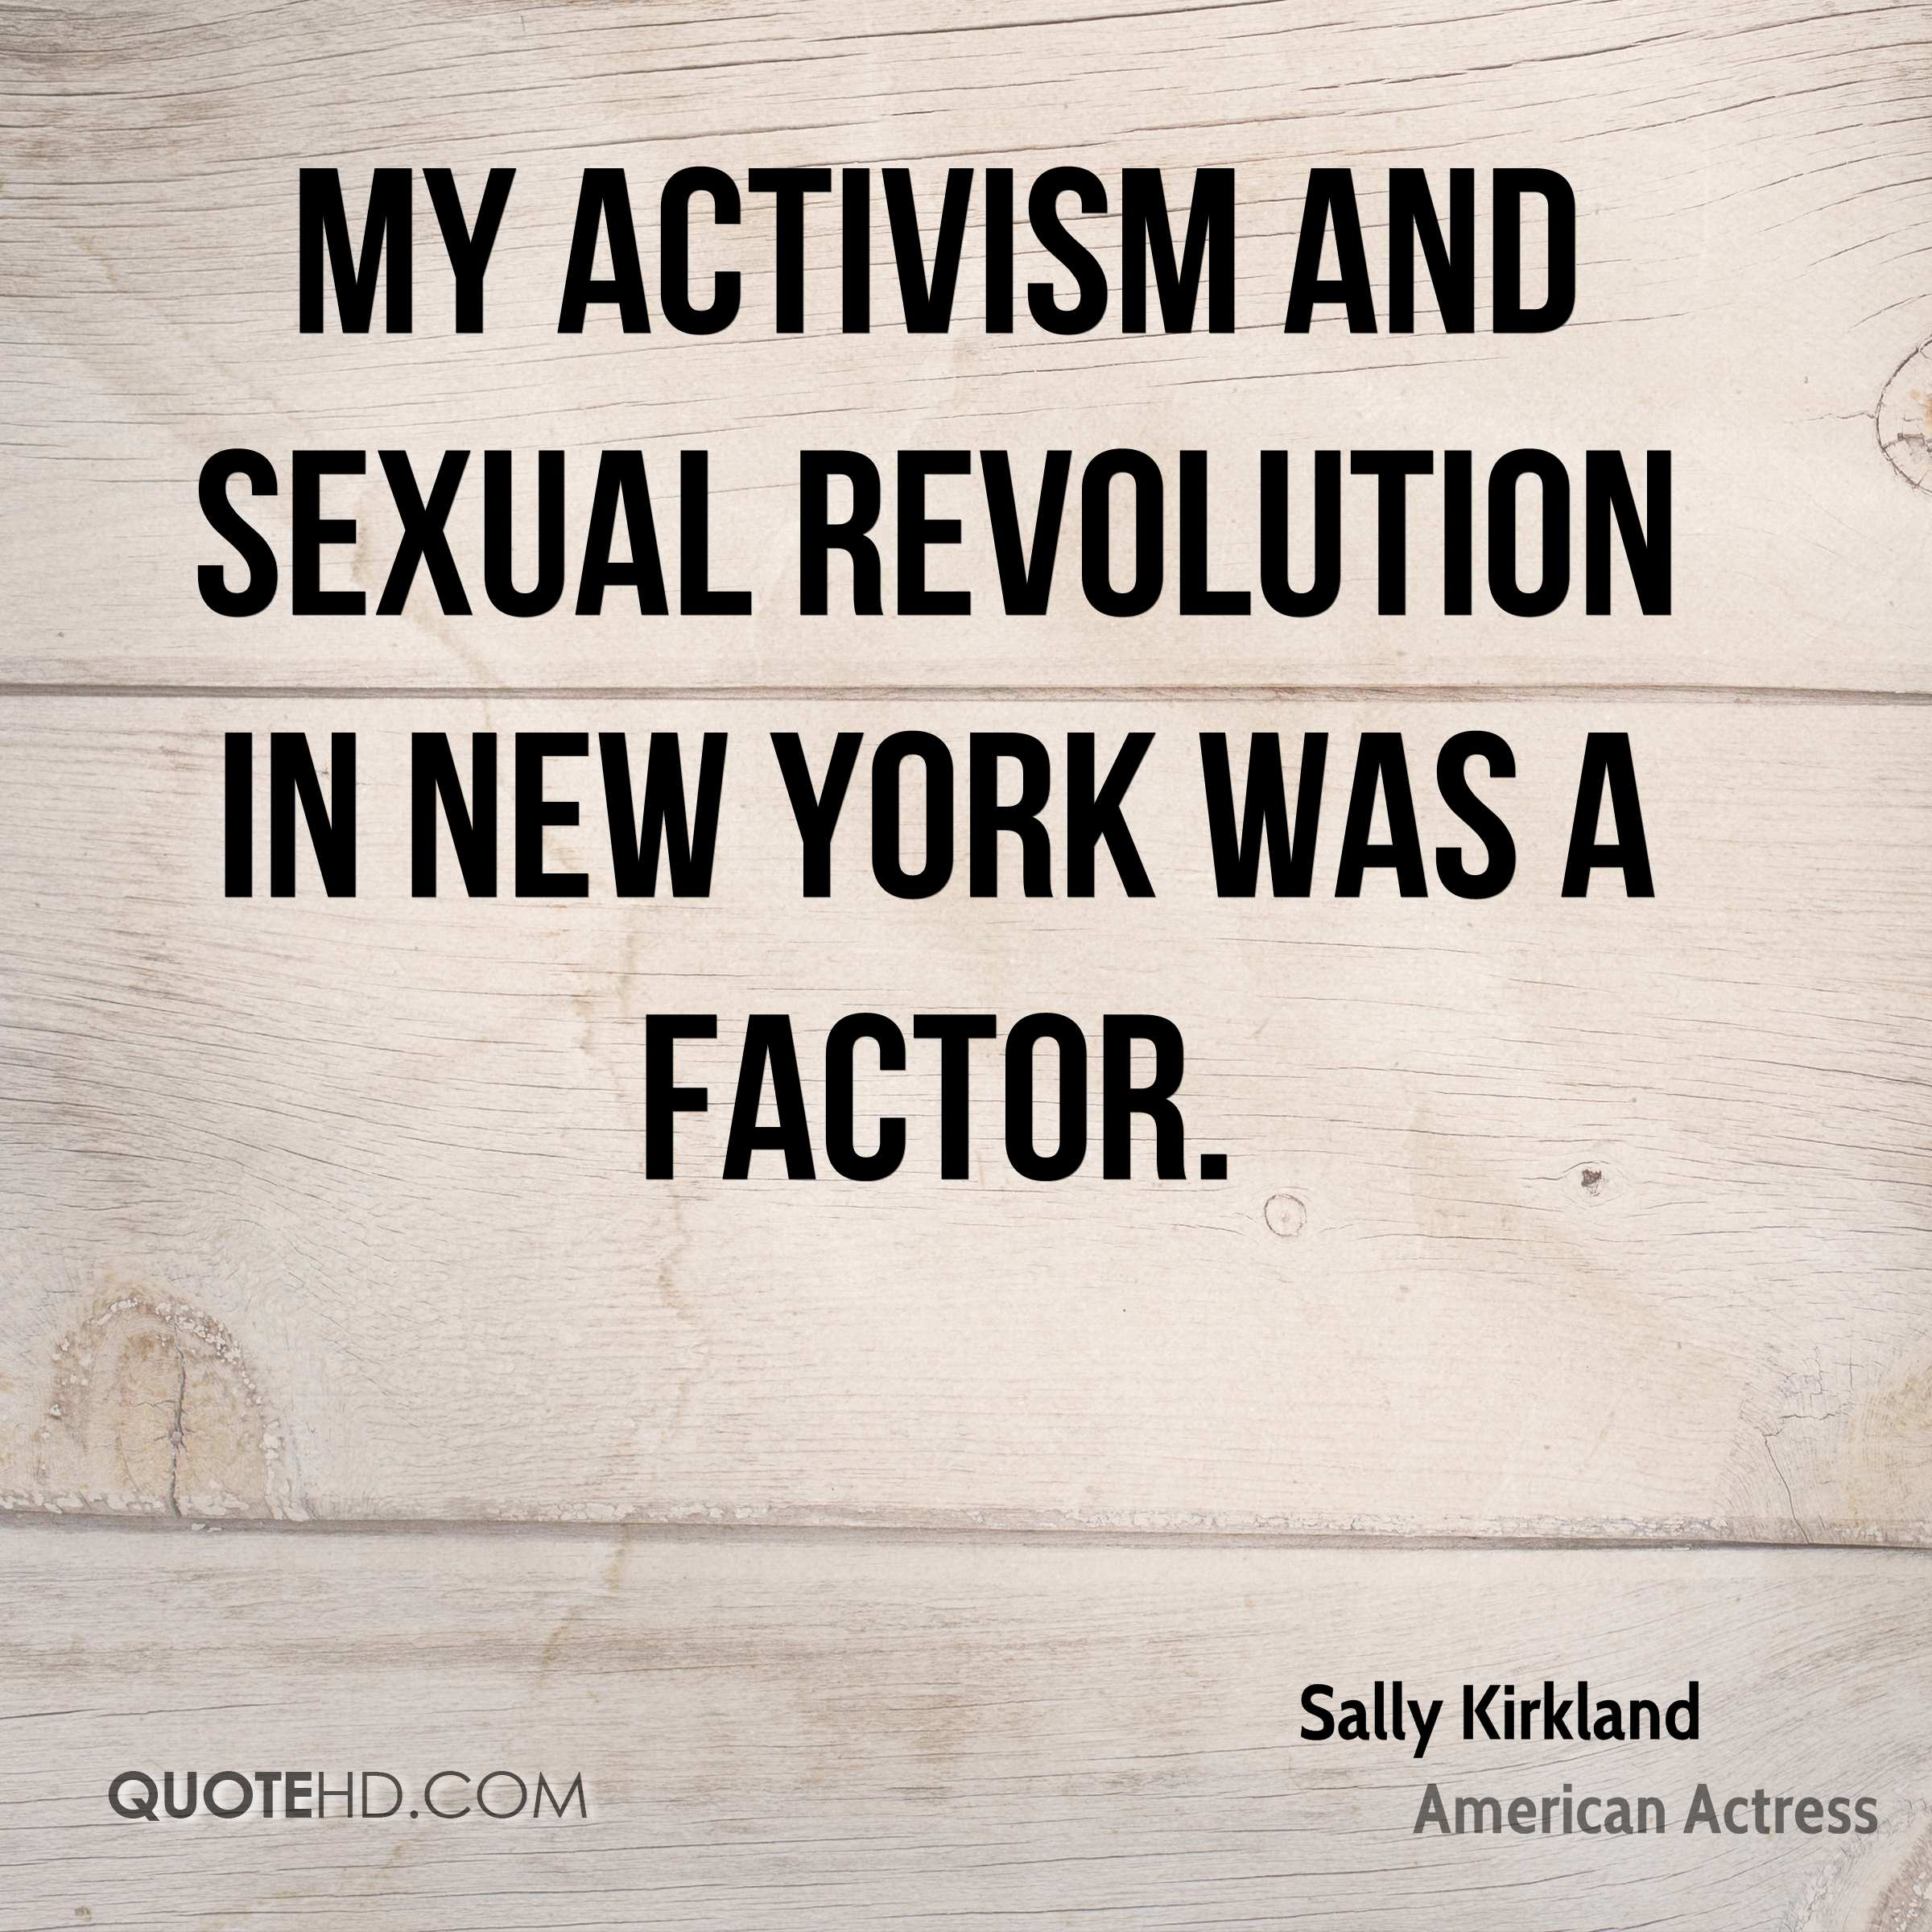 My activism and sexual revolution in New York was a factor.